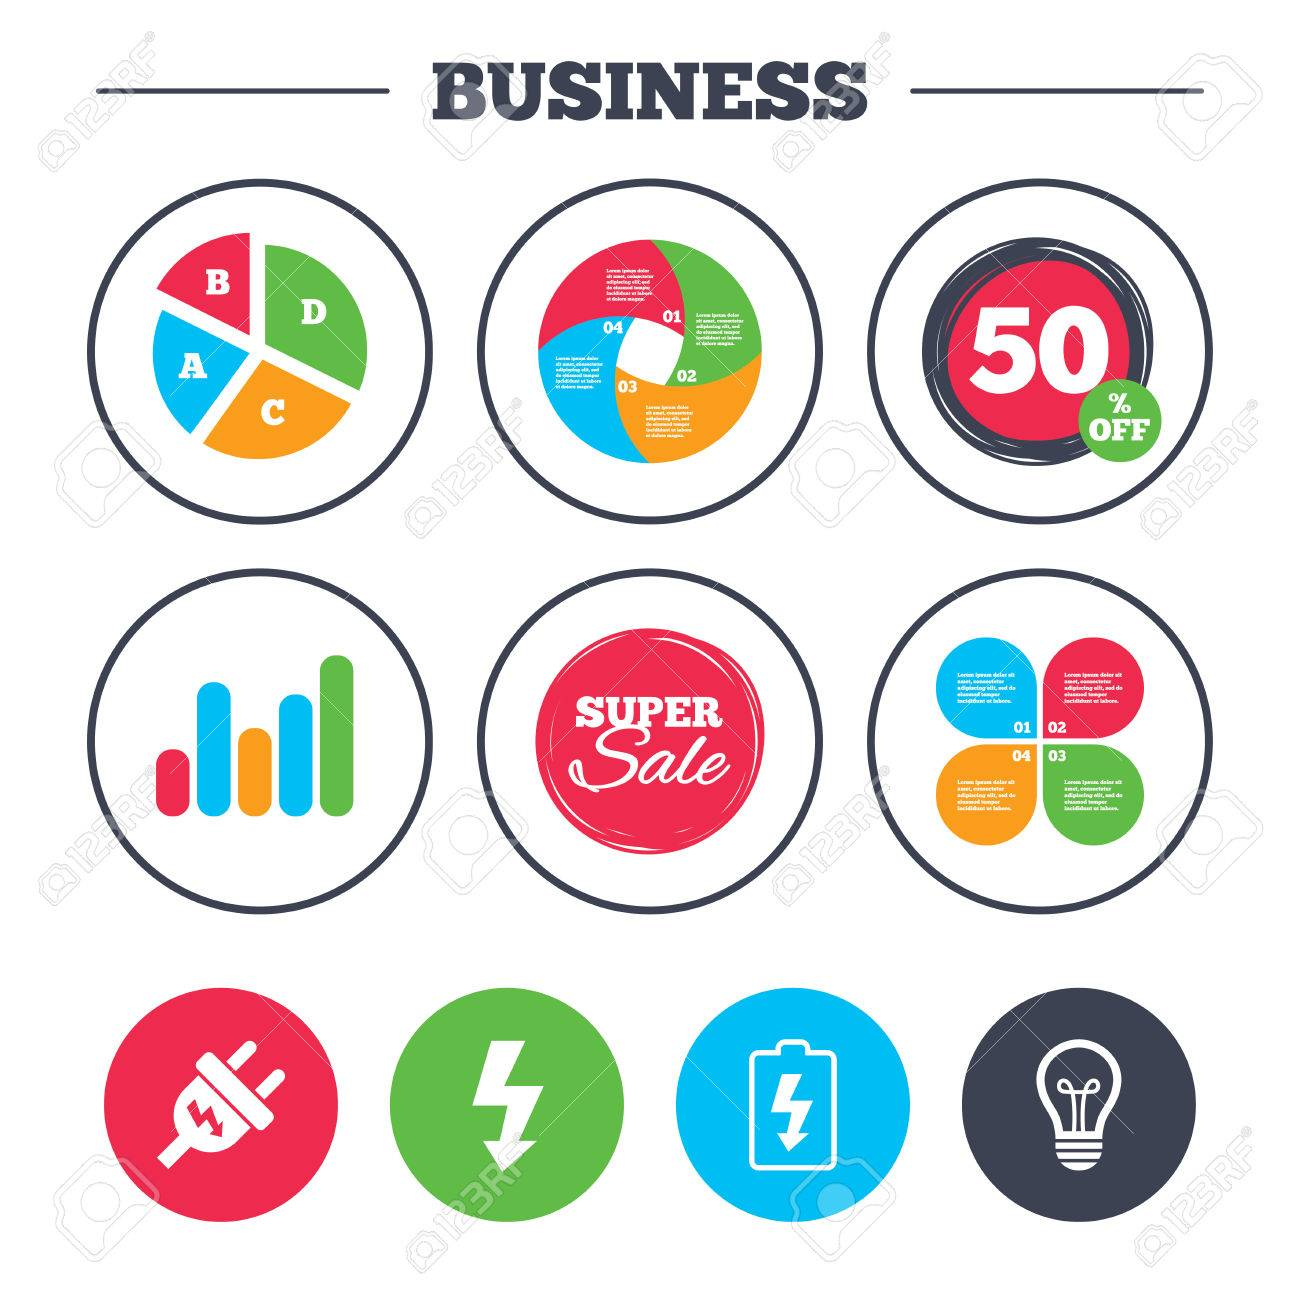 hight resolution of business pie chart growth graph electric plug icon lamp bulb and battery symbols